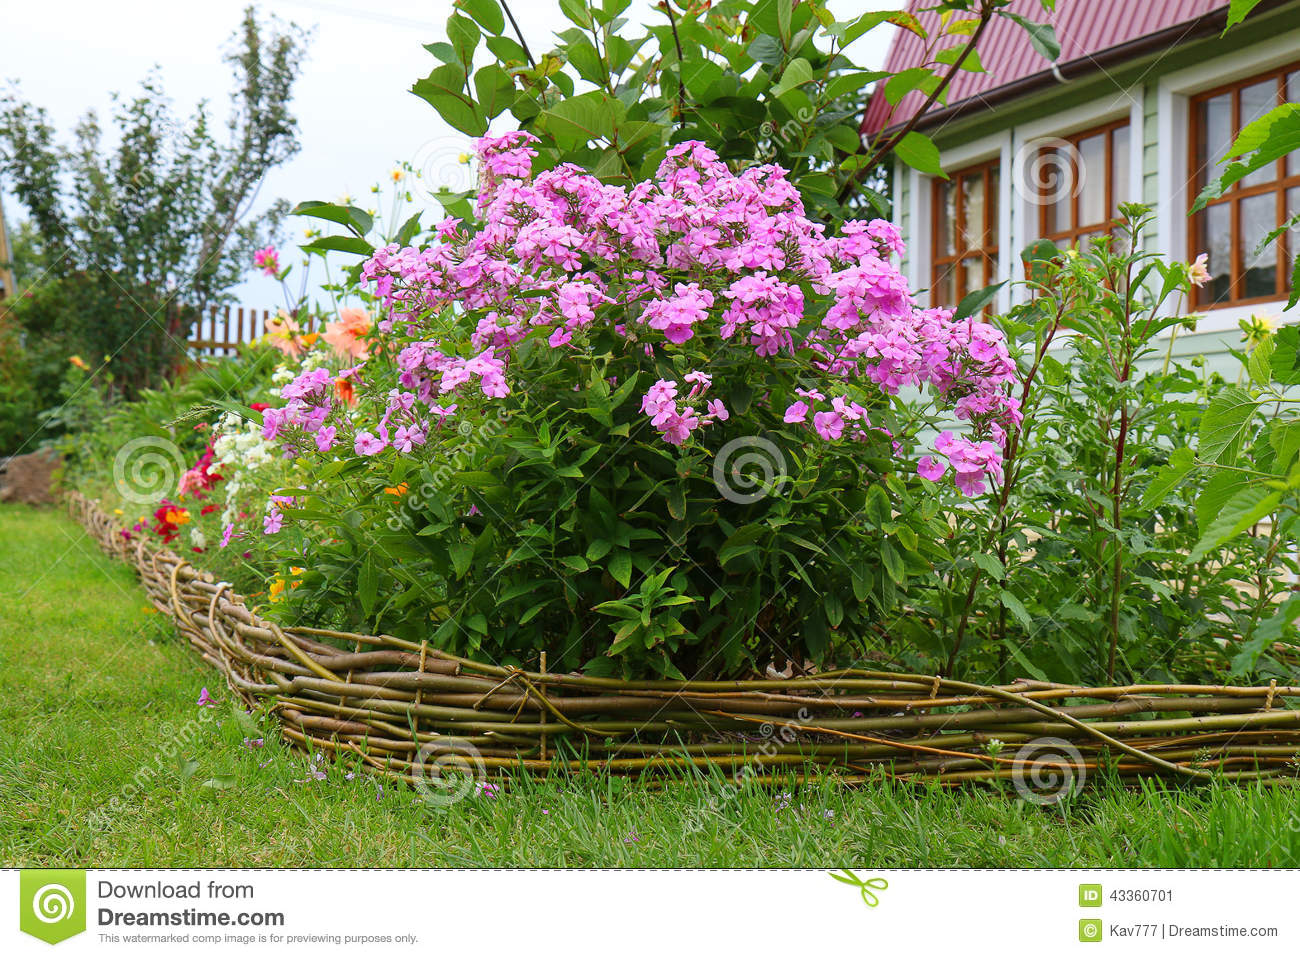 Phlox Paniculata In Bloom Stock Photo Image 43360701